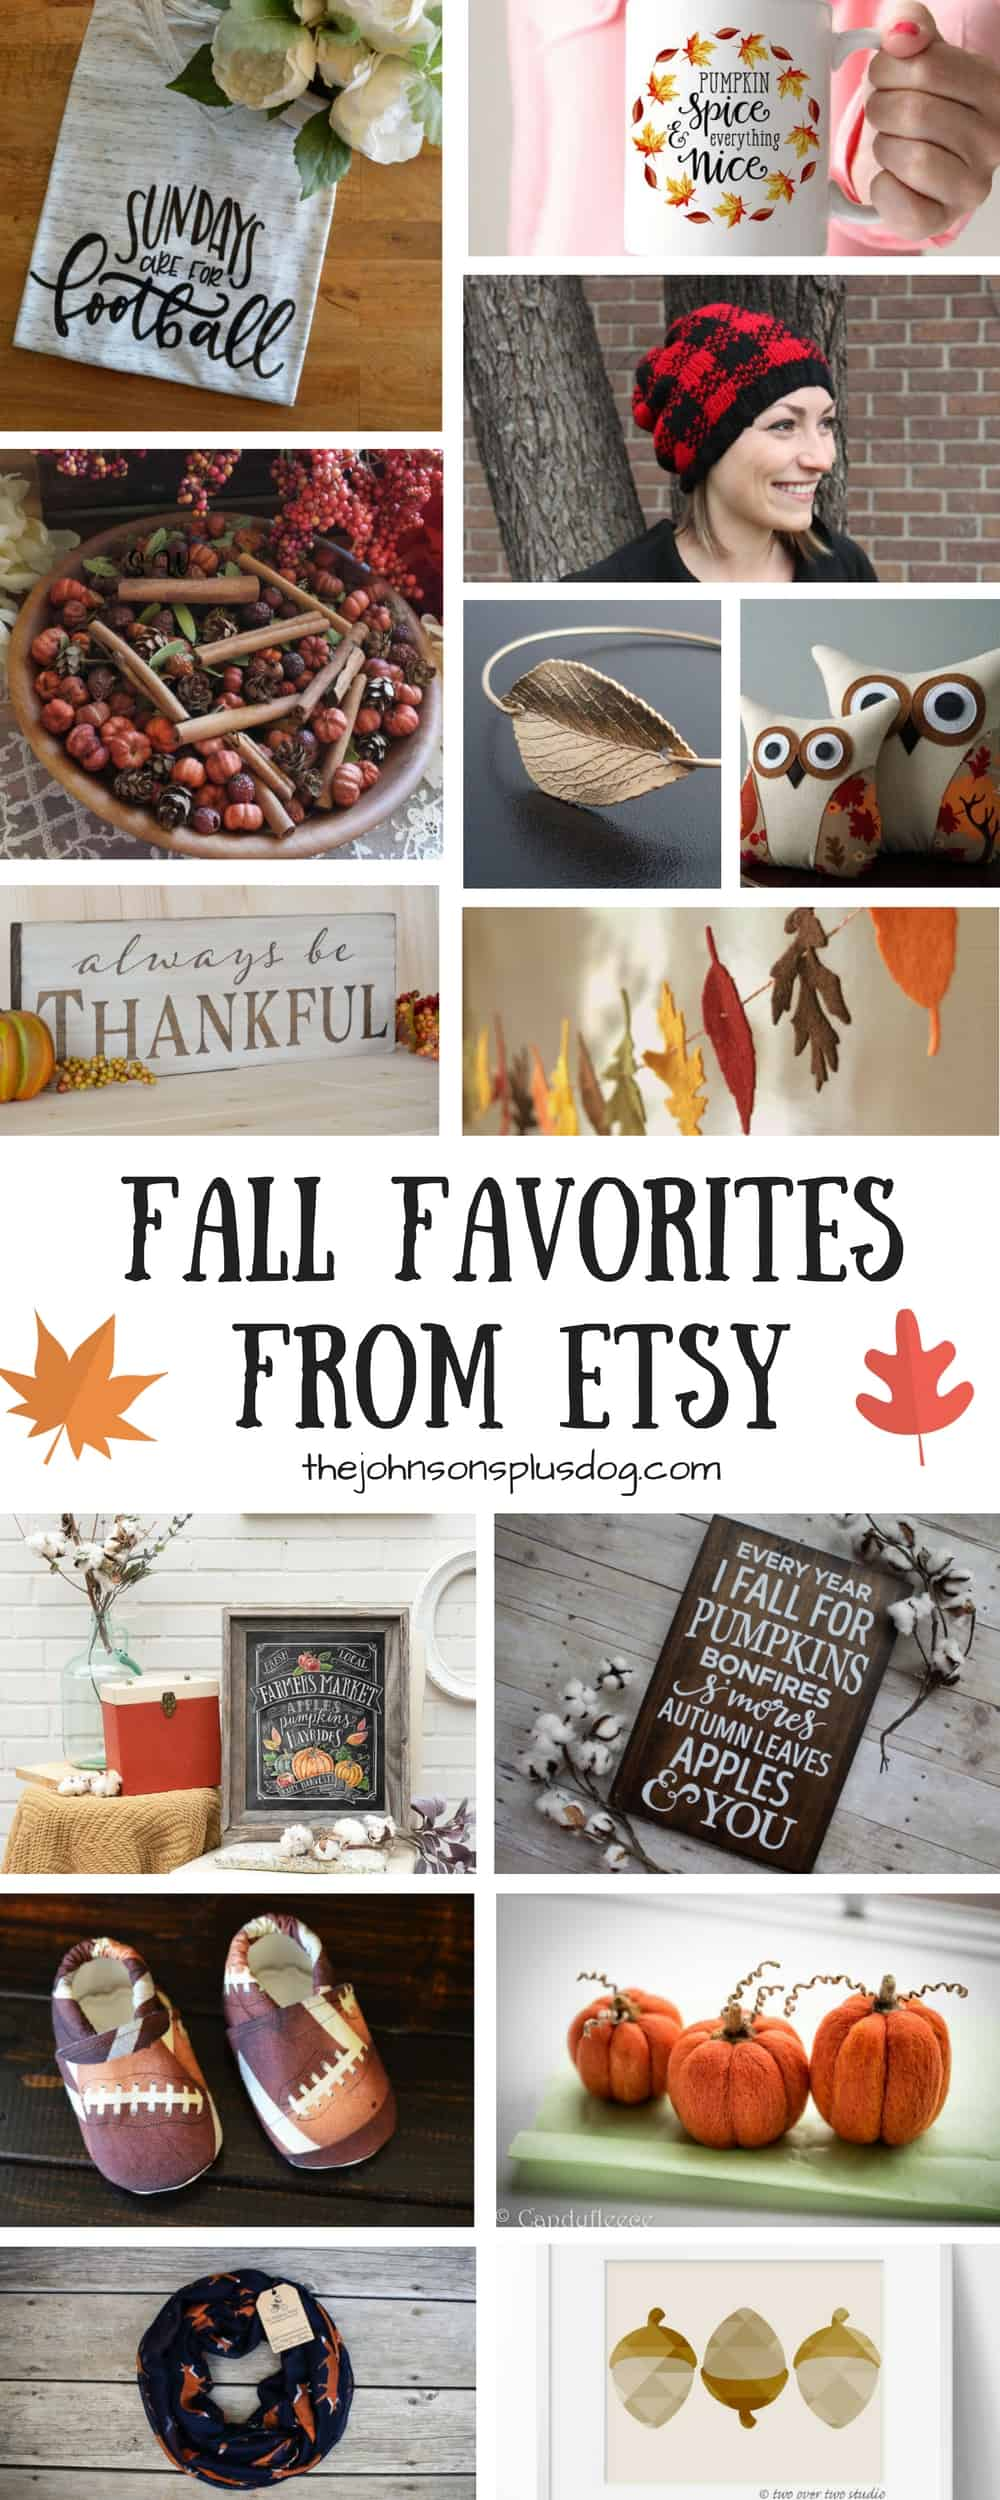 14 Fall Favorites from Etsy